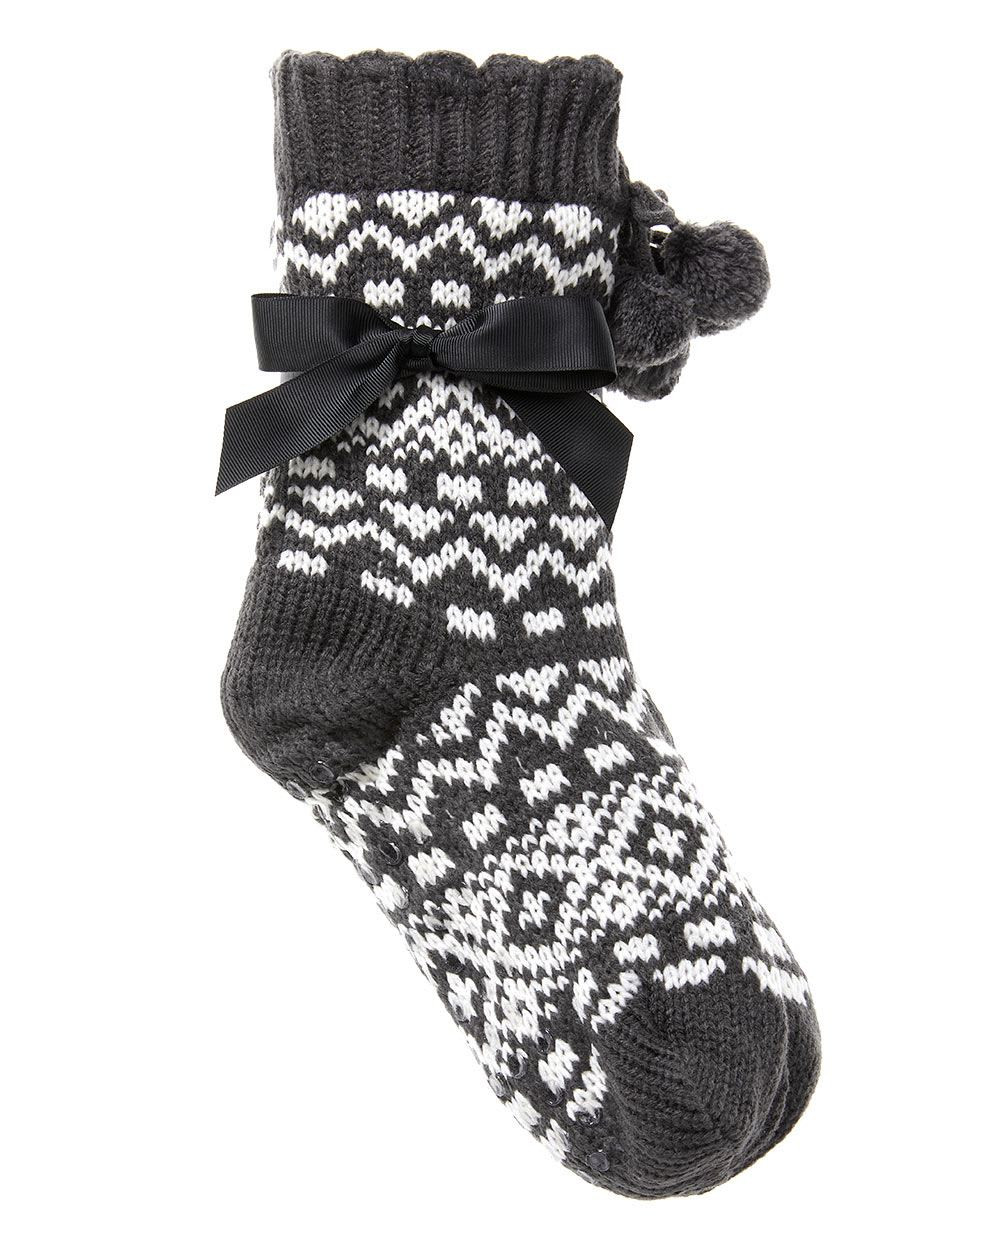 Patterned socks Best Of Patterned Knit socks with Pompom Of Superb 48 Images Patterned socks